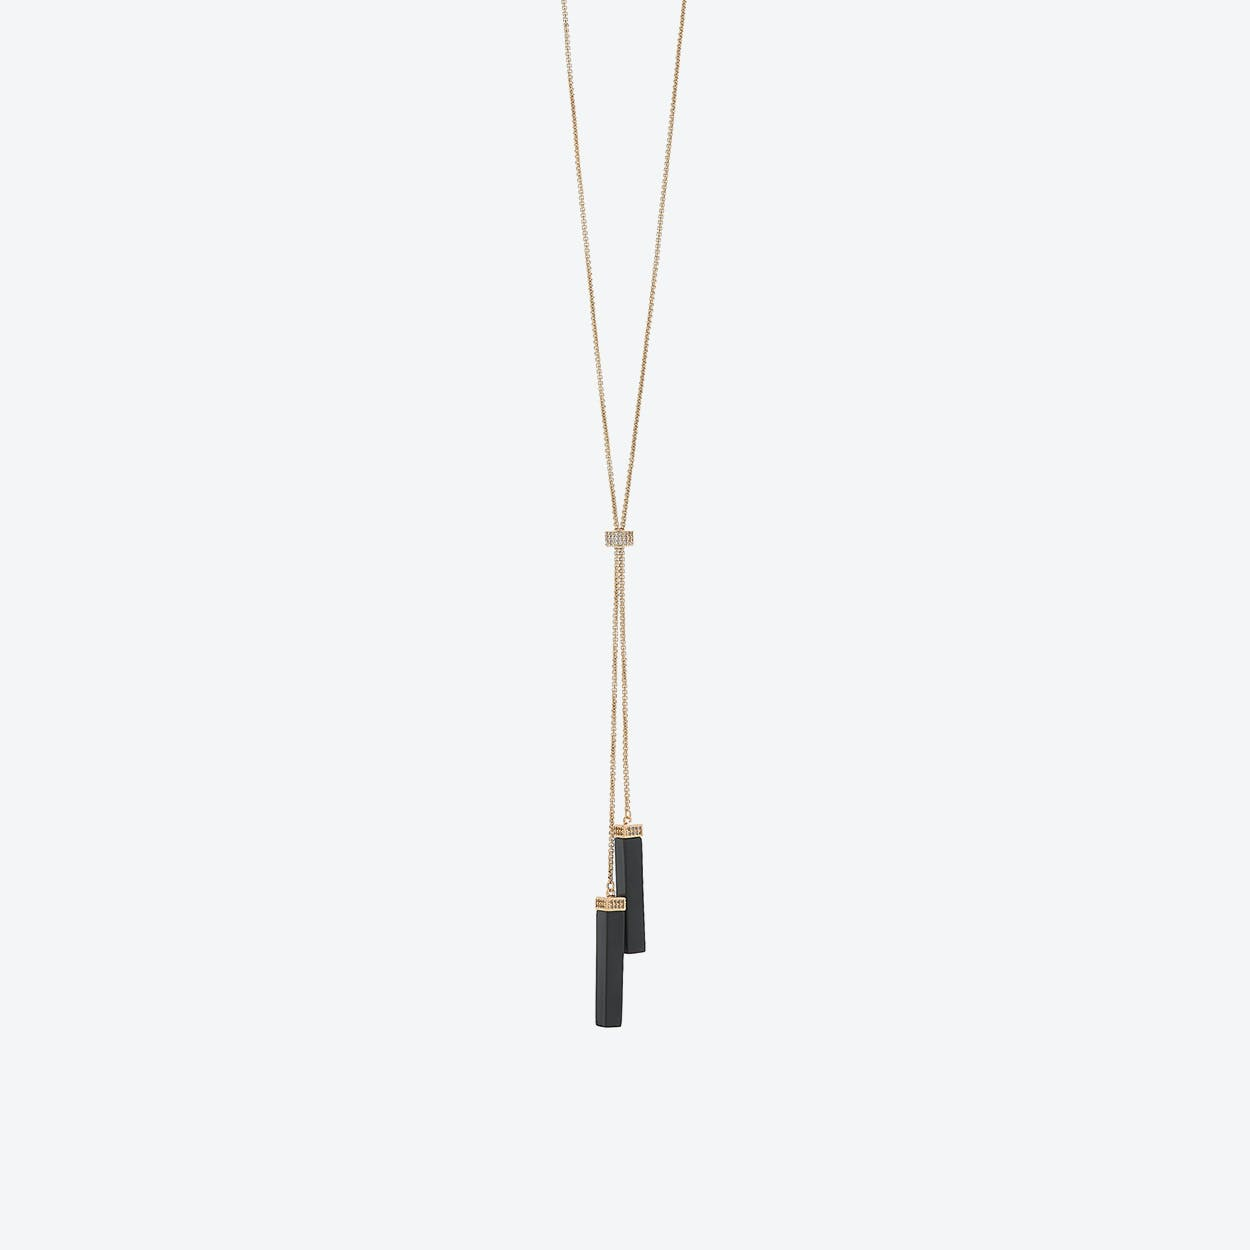 18k Gold Lariat with Black Onyx Drops